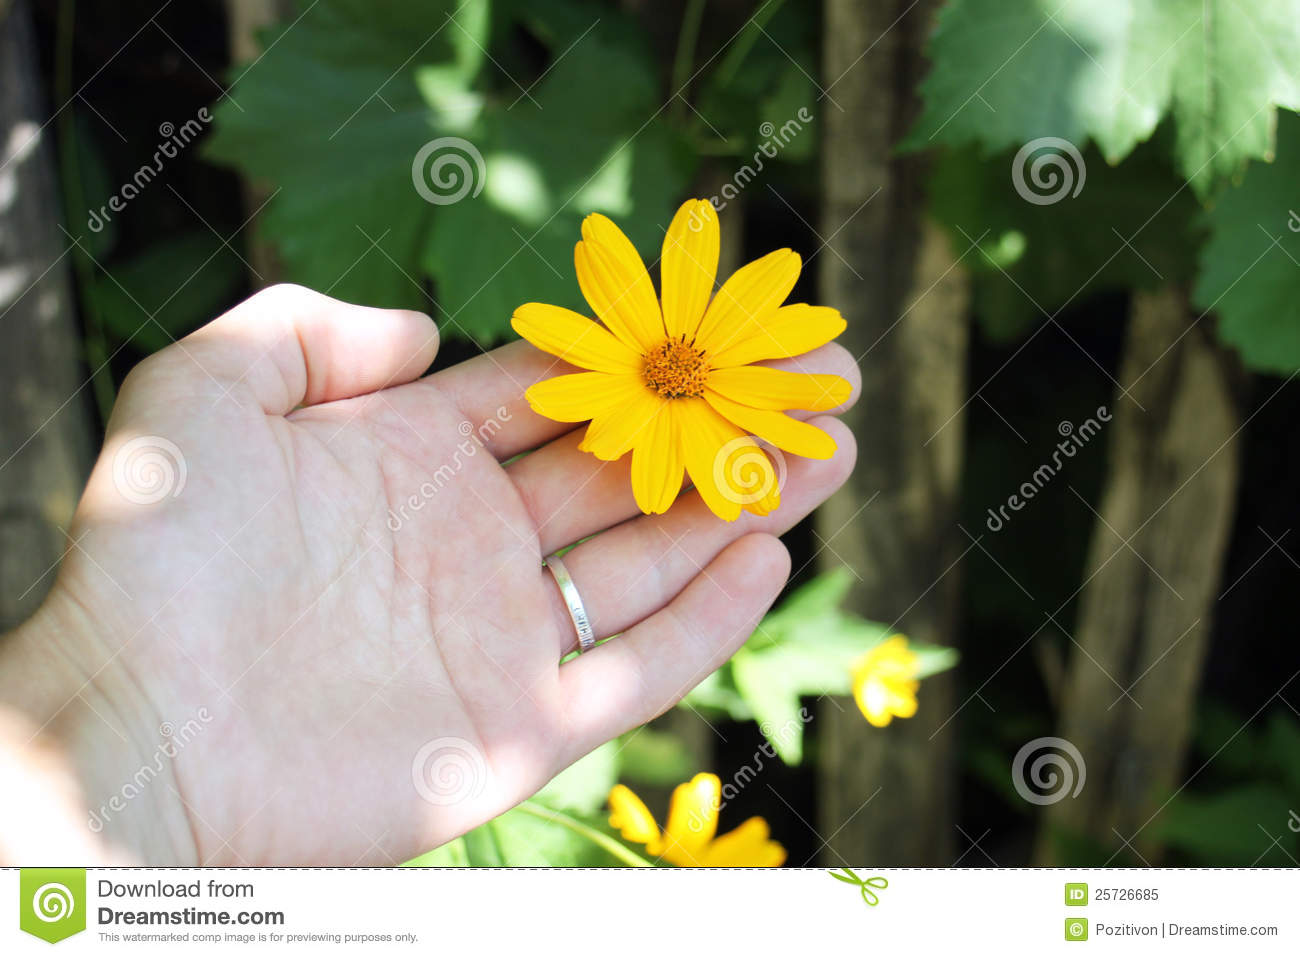 Flower dendrantema yellow in hand